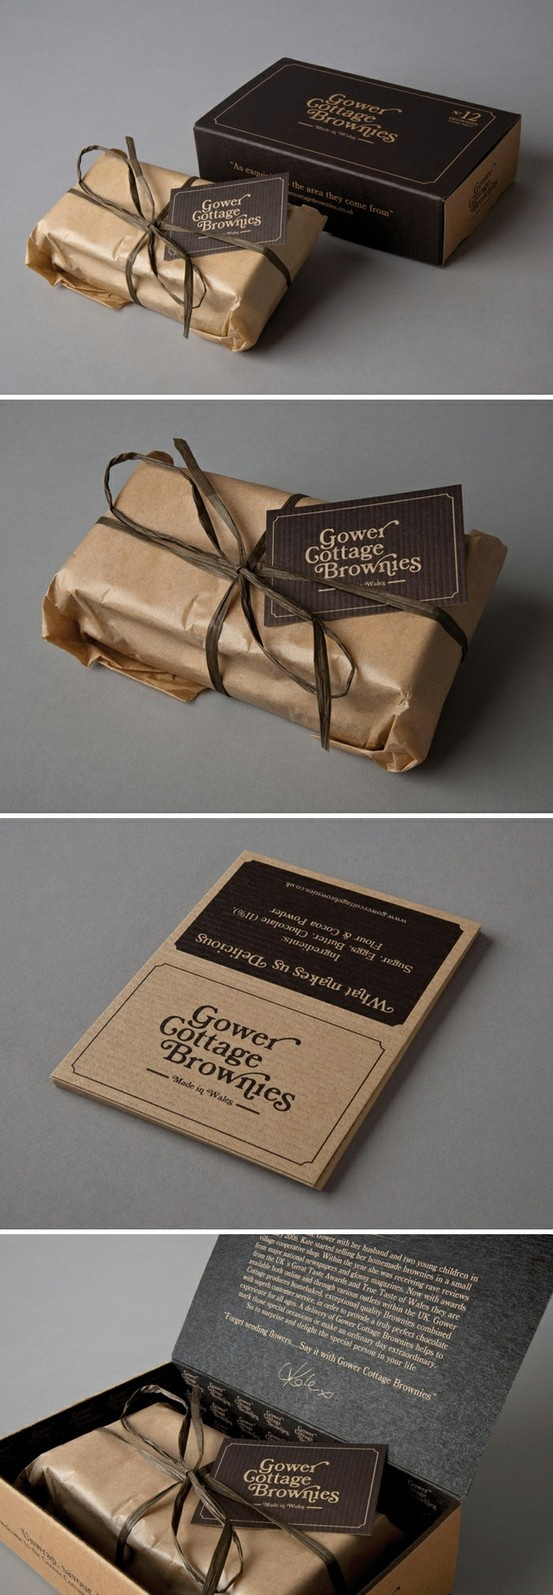 Gower Cottage Brownies | Designed by Kutchibok